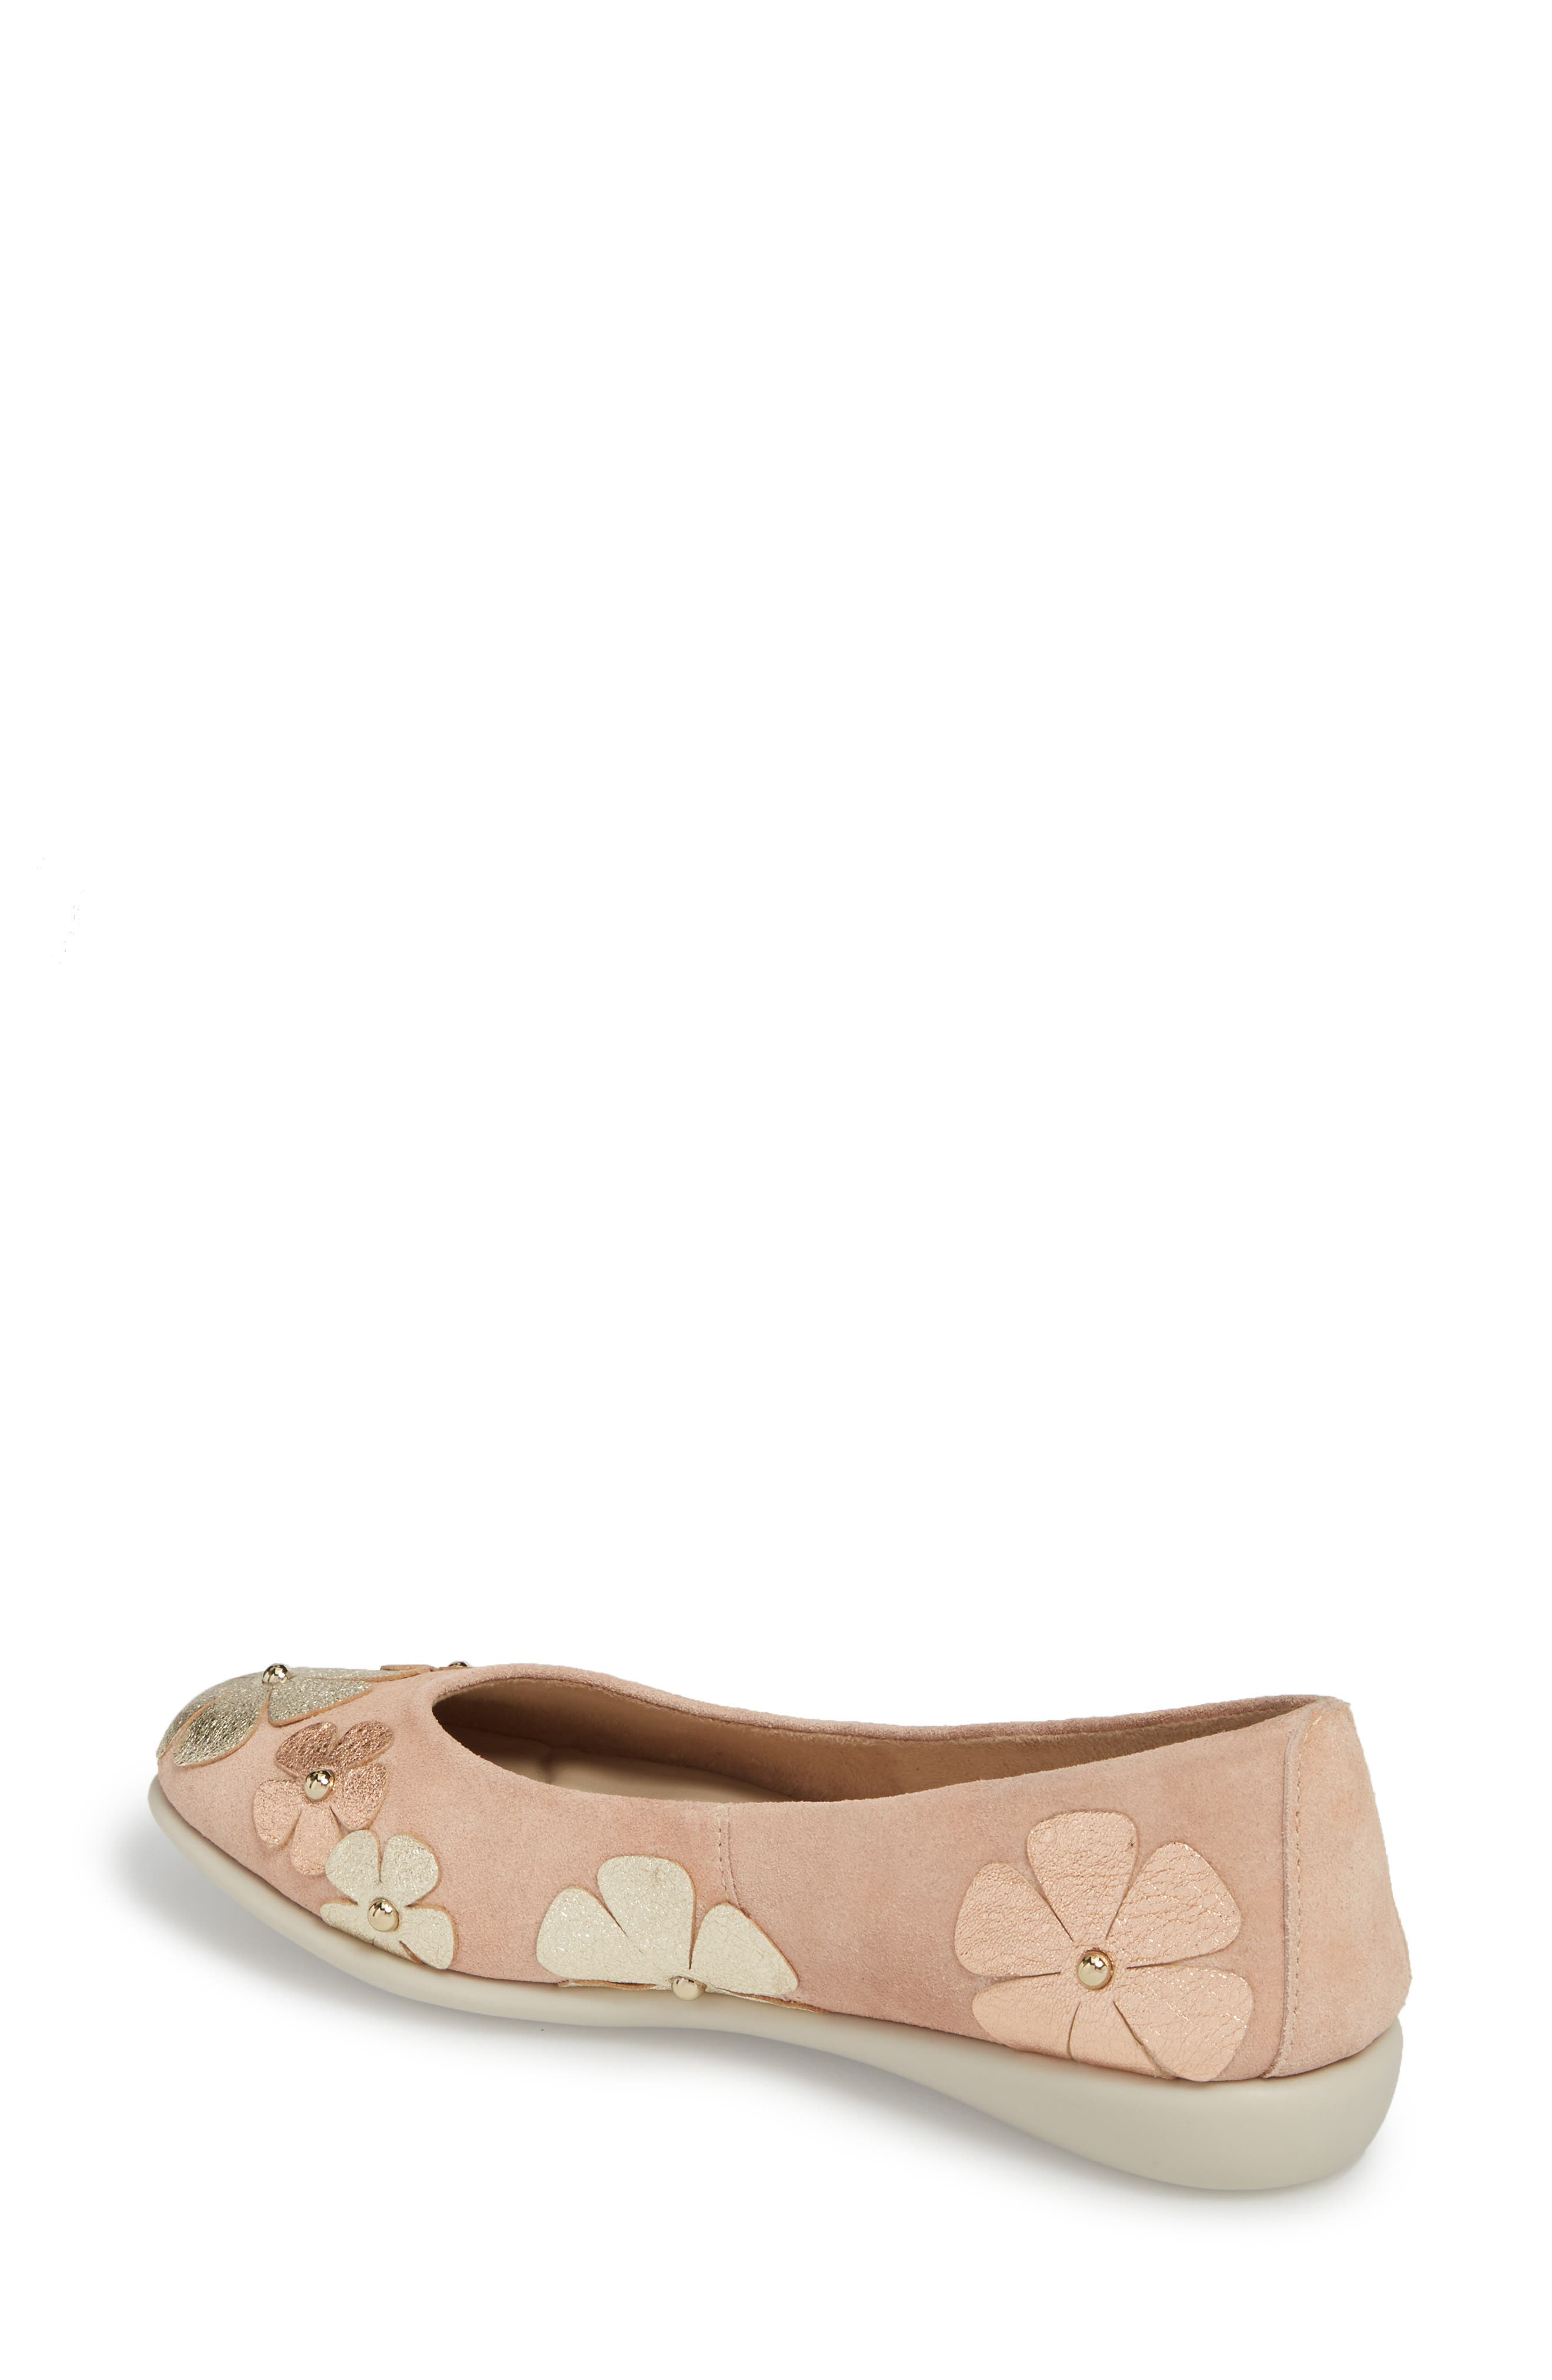 Miss Hippie Ballerina Flat,                             Alternate thumbnail 2, color,                             ROSE GOLD LEATHER